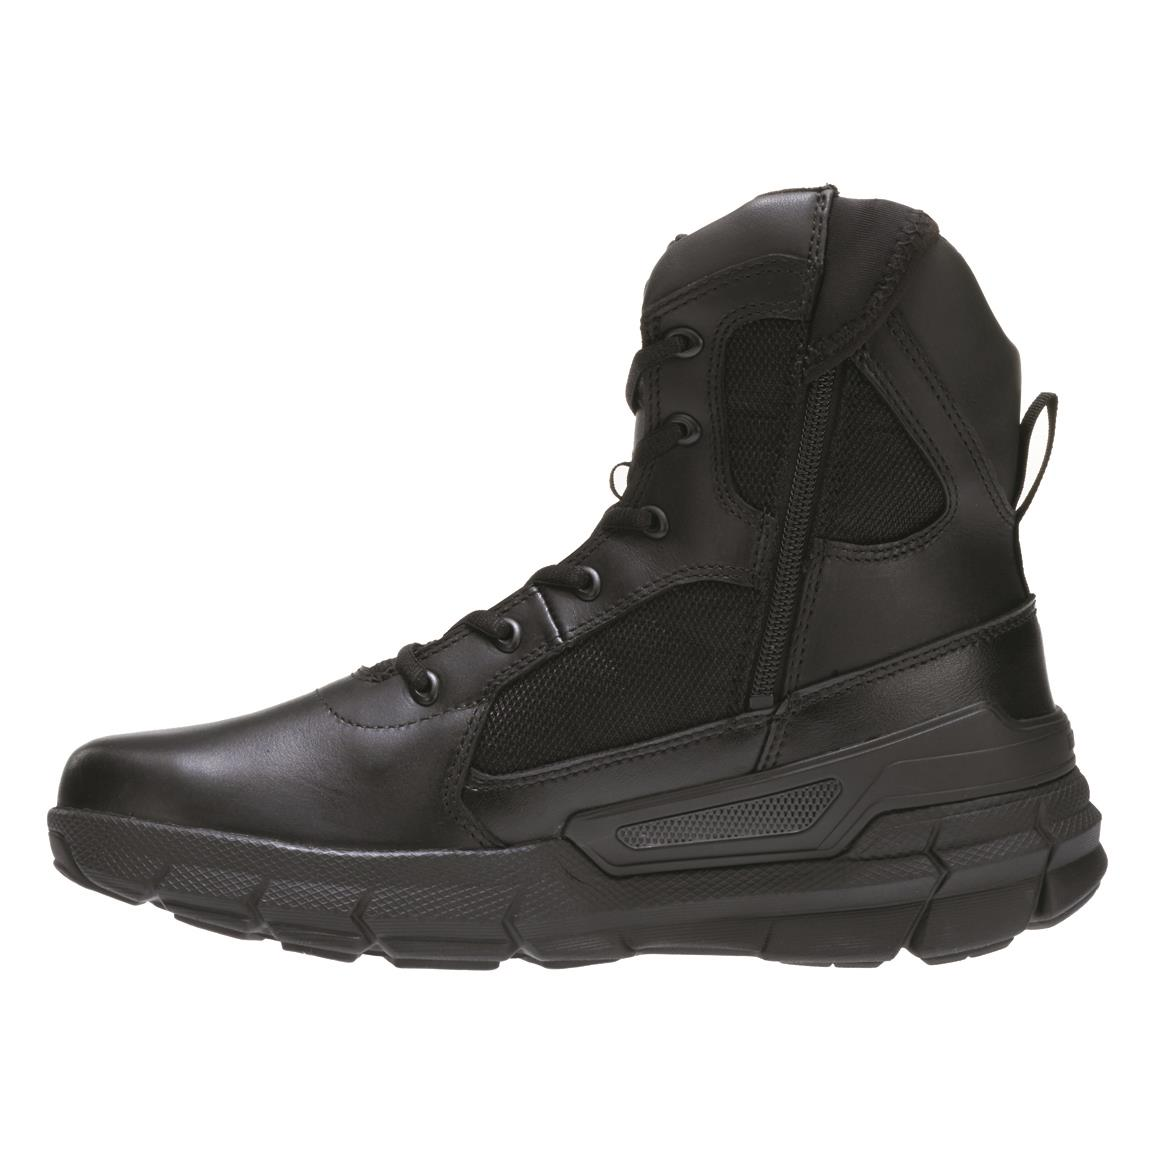 "Bates Men's 8"" Charge Side-Zip Tactical Boots, Black"